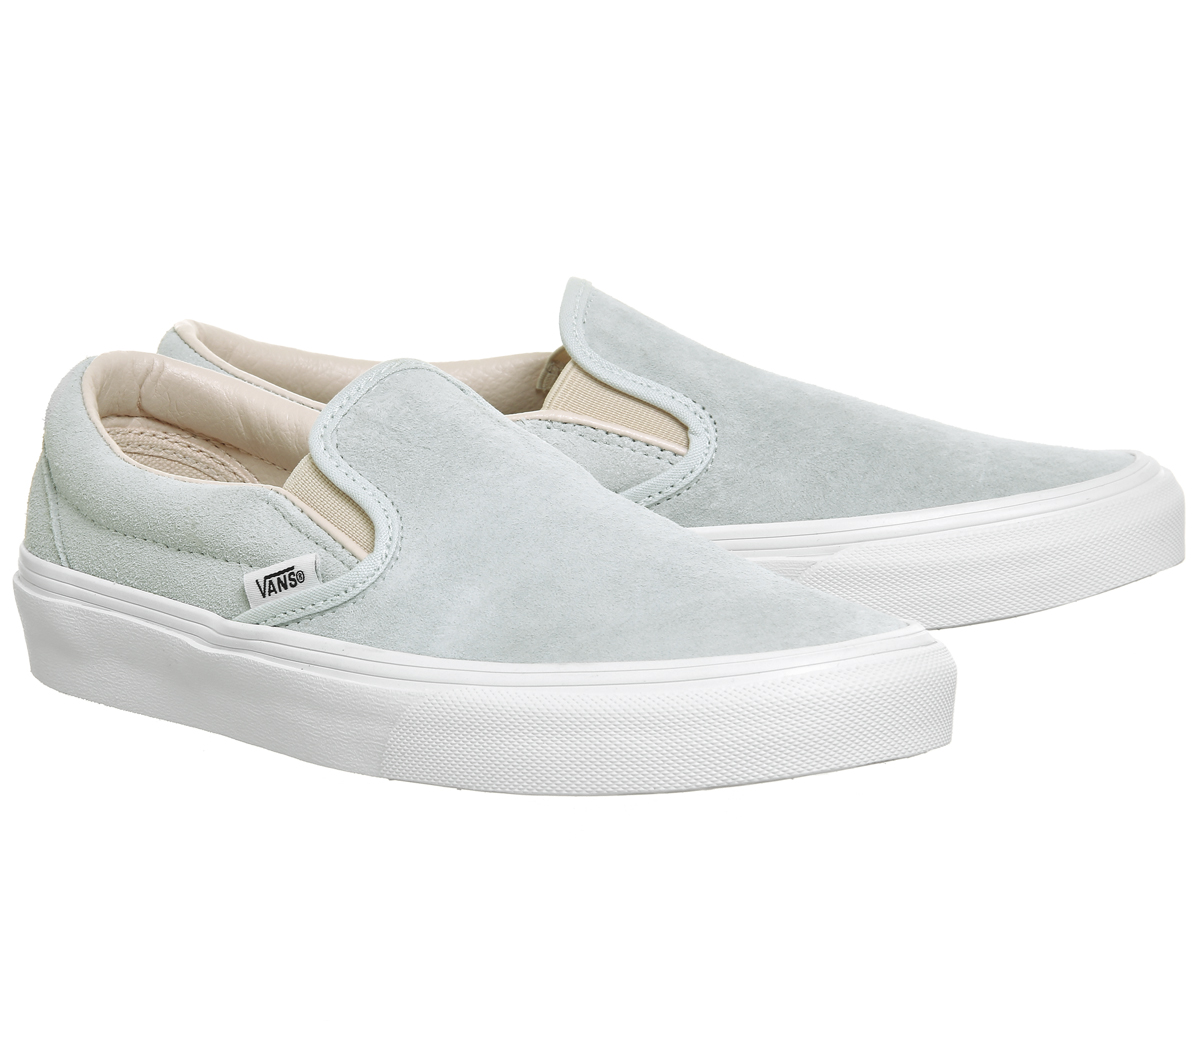 Damenschuhe Vans Vans Classic Slip On Trainers ILLUSION BLUE SILVER PEONY EXCLUSIVE T